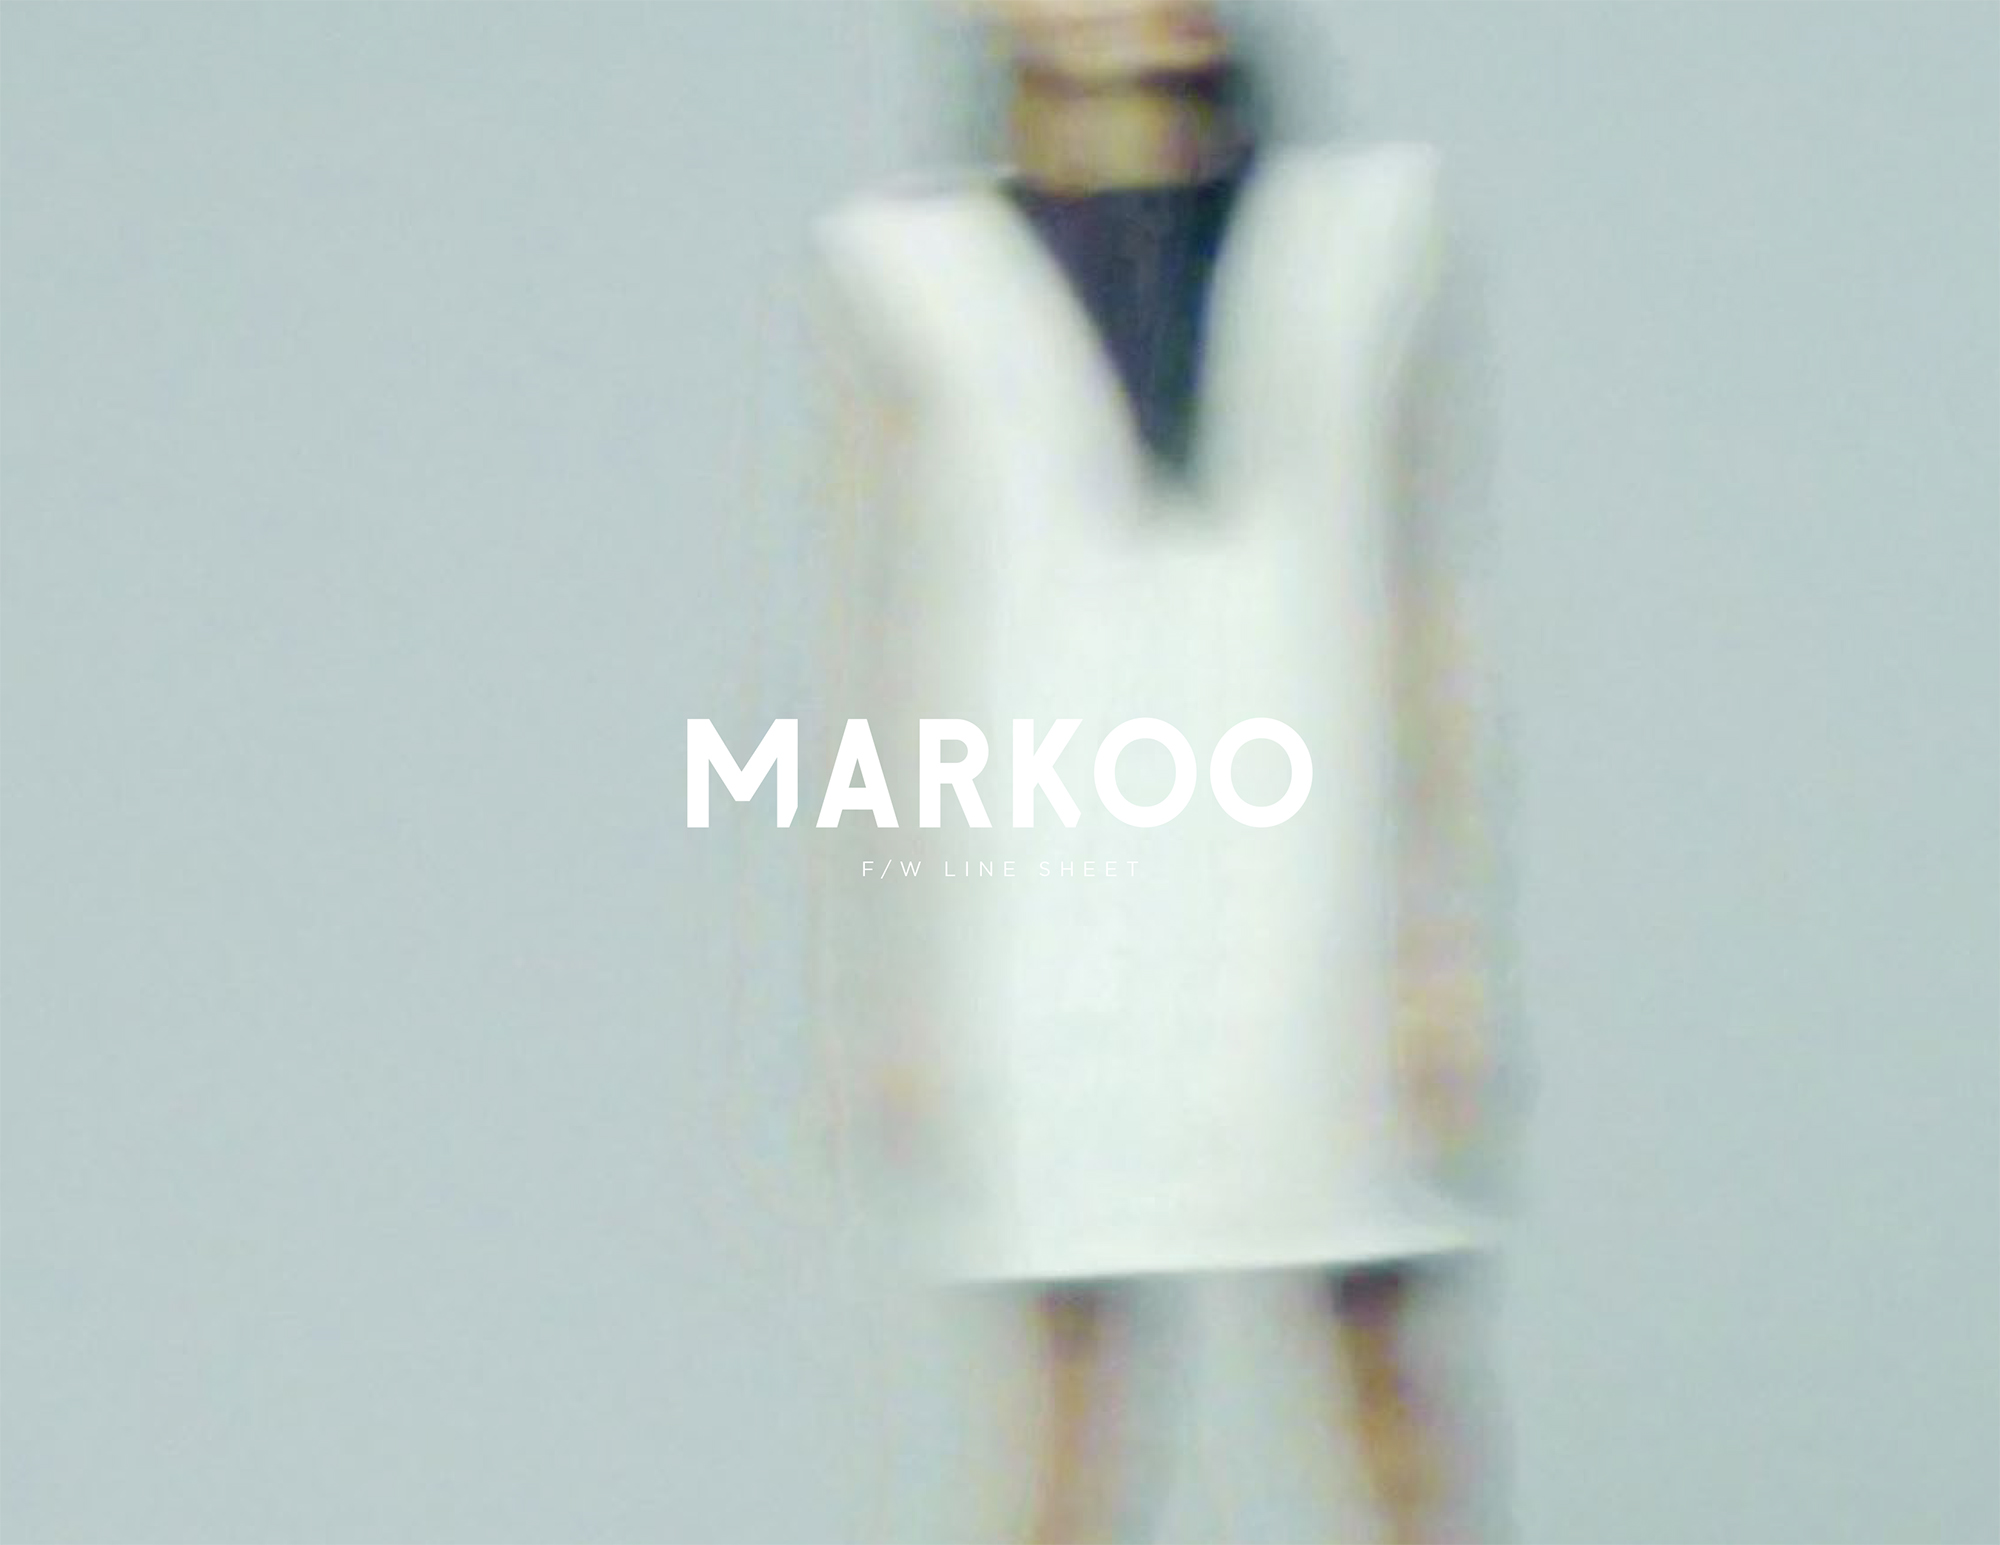 A selection of images from the Markoo Studios Fall/Winter '15 campaign and lookbook.